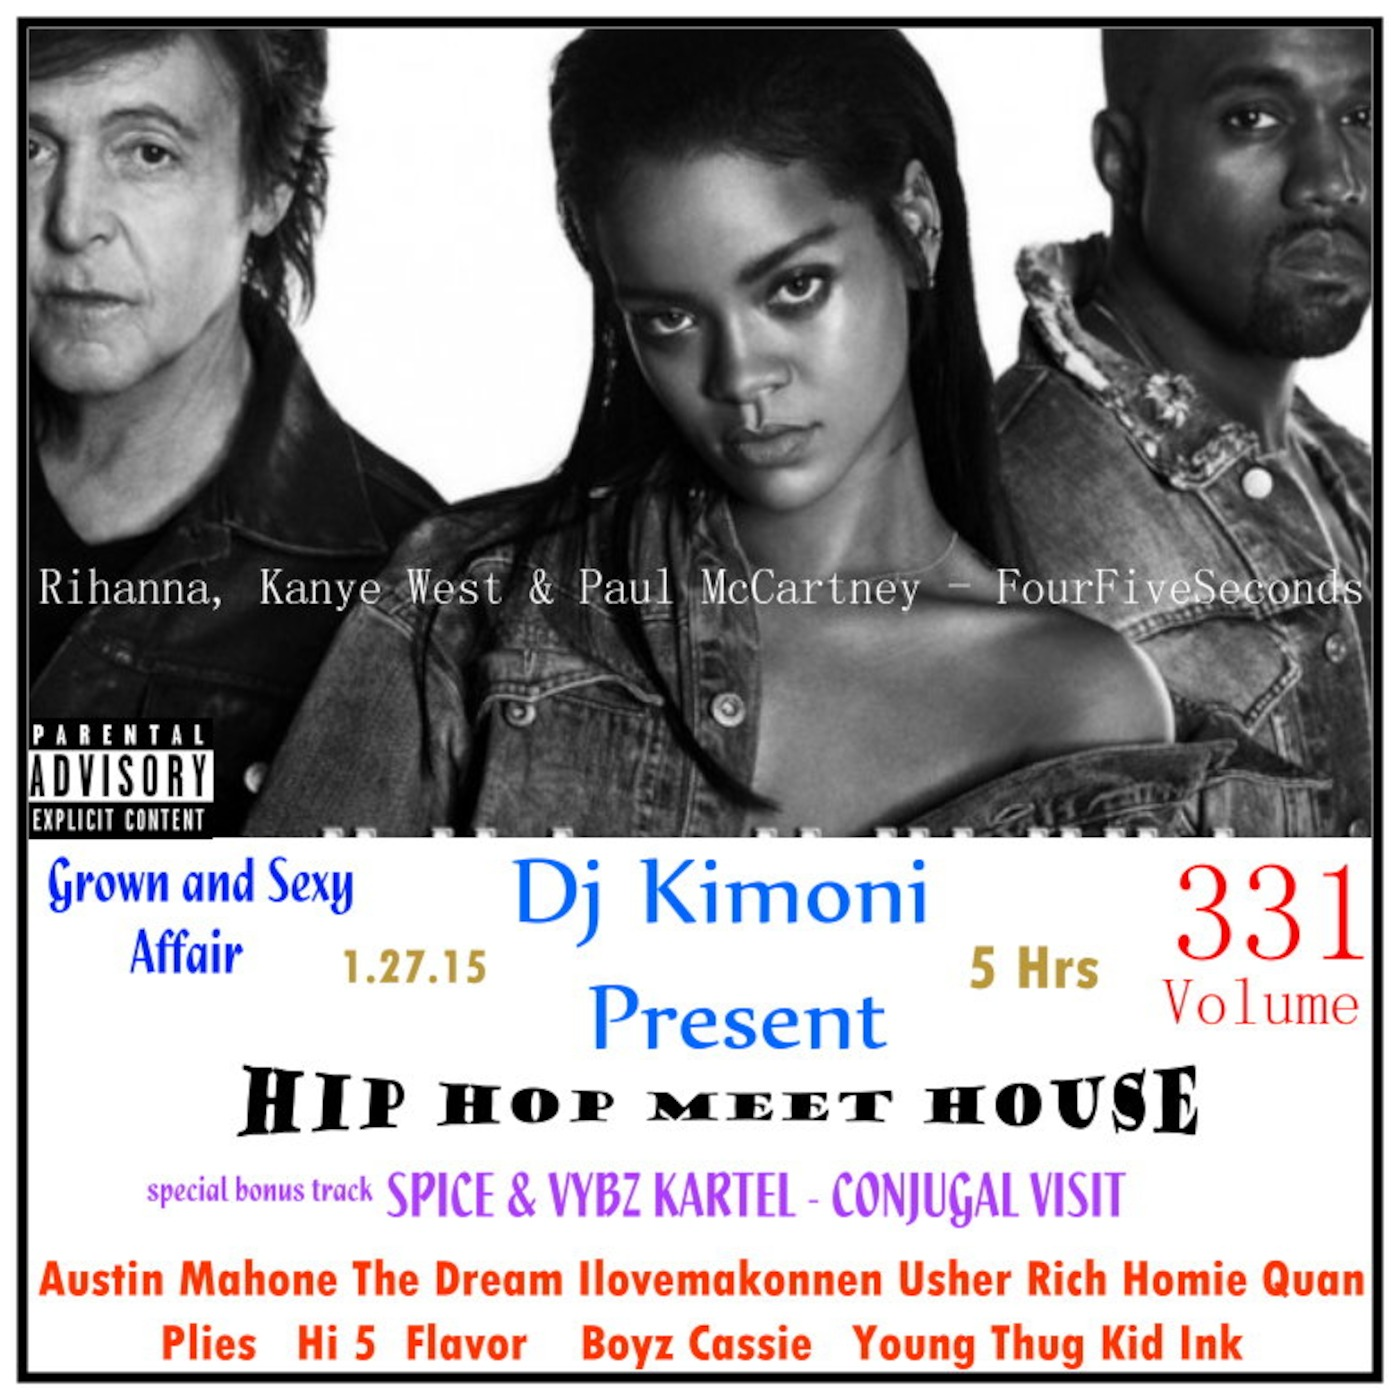 Dj kimoni just hip hop rnb volume 331 grown sexy affair hip hop dj kimoni just hip hop rnb volume 331 grown sexy affair hip hop meet house 1 dvd 1 26 15 m4hsunfo